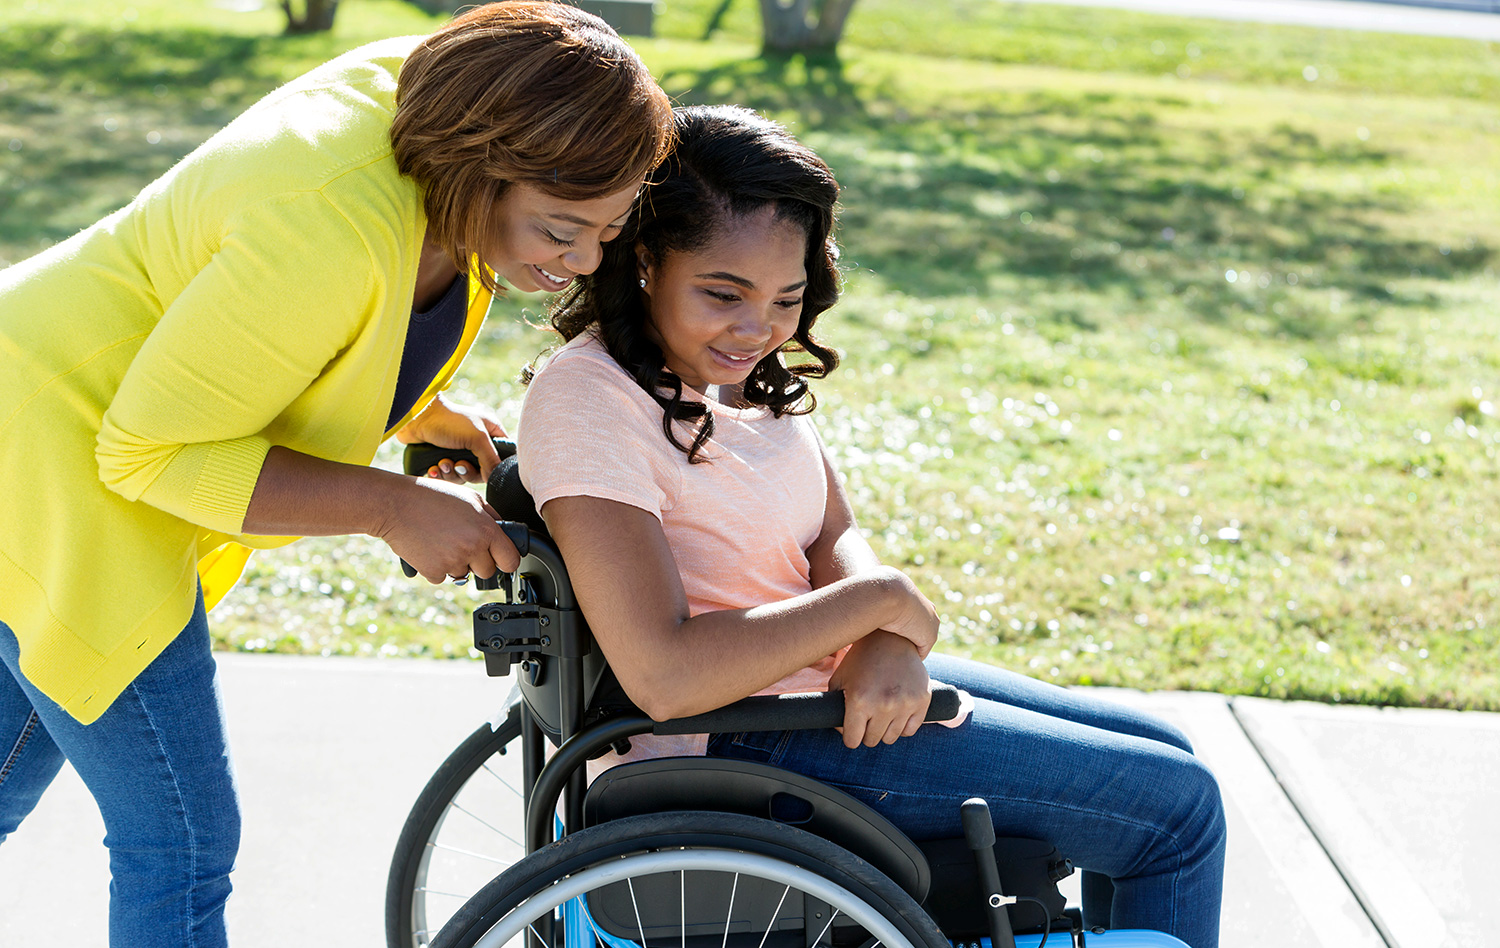 Woman pushes girl in a wheelchair.